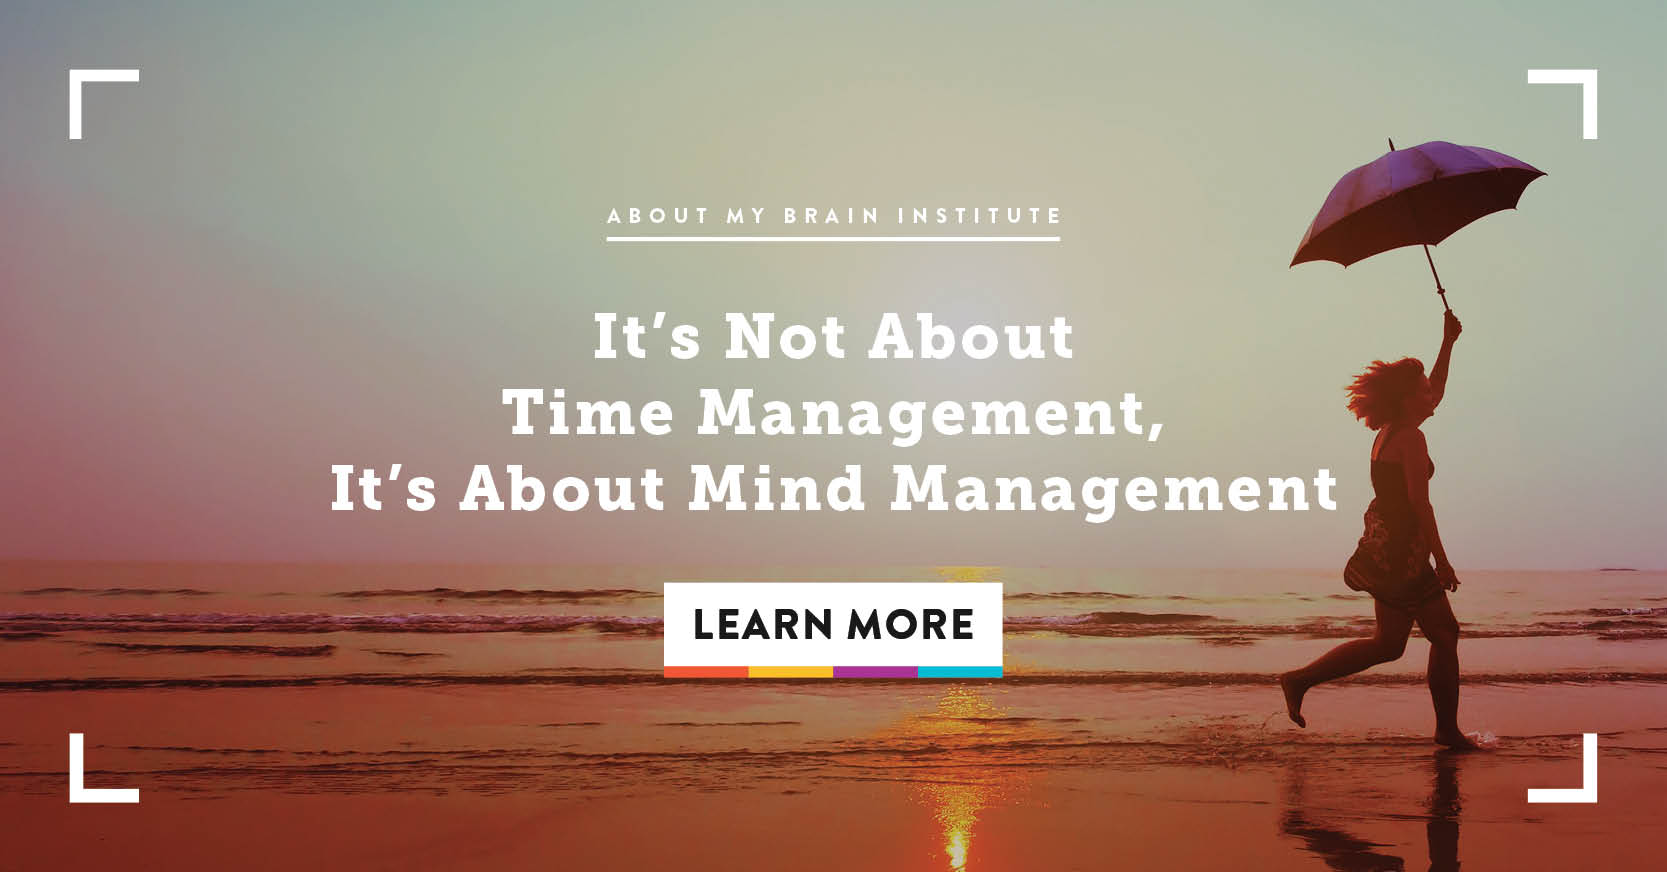 It's Not About Time Management, It's About Mind Management